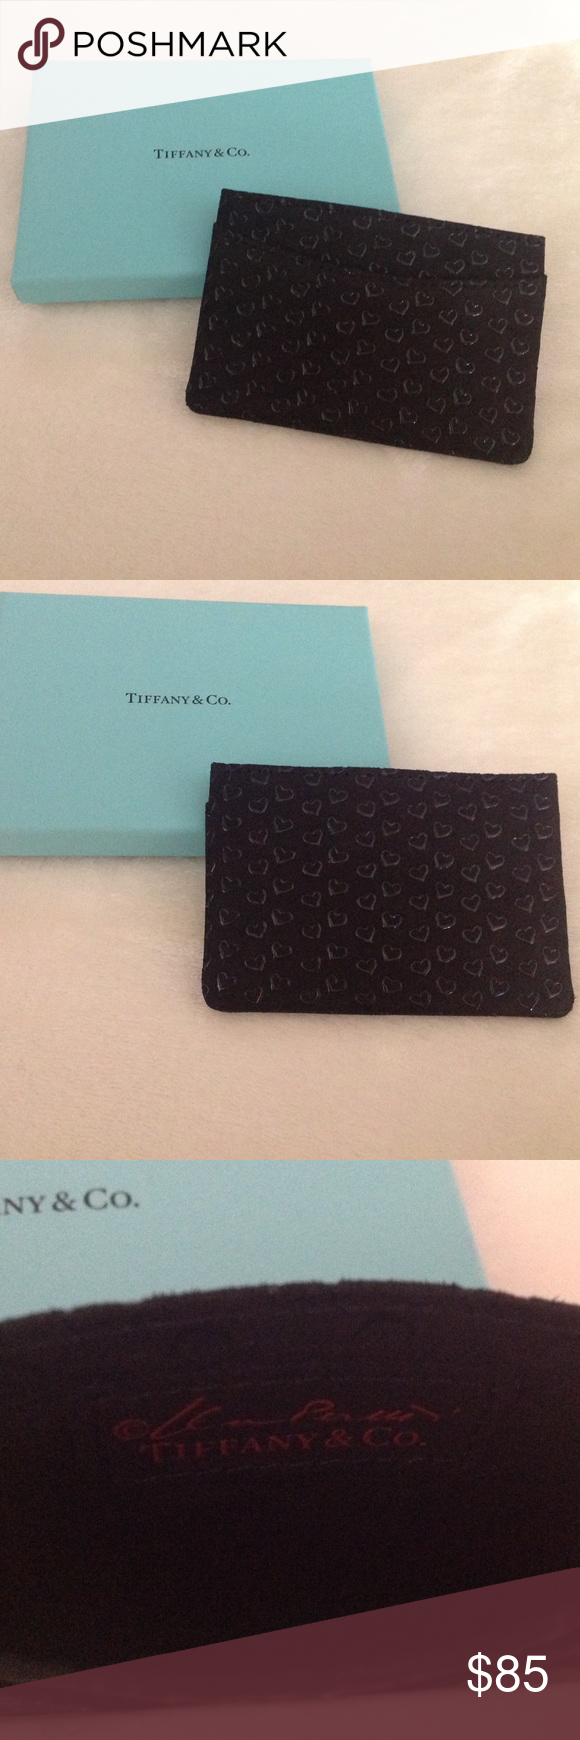 Elsa Peretti card case in black leather with lacquered Open Hearts Tiffany & Co. Mhmxw71